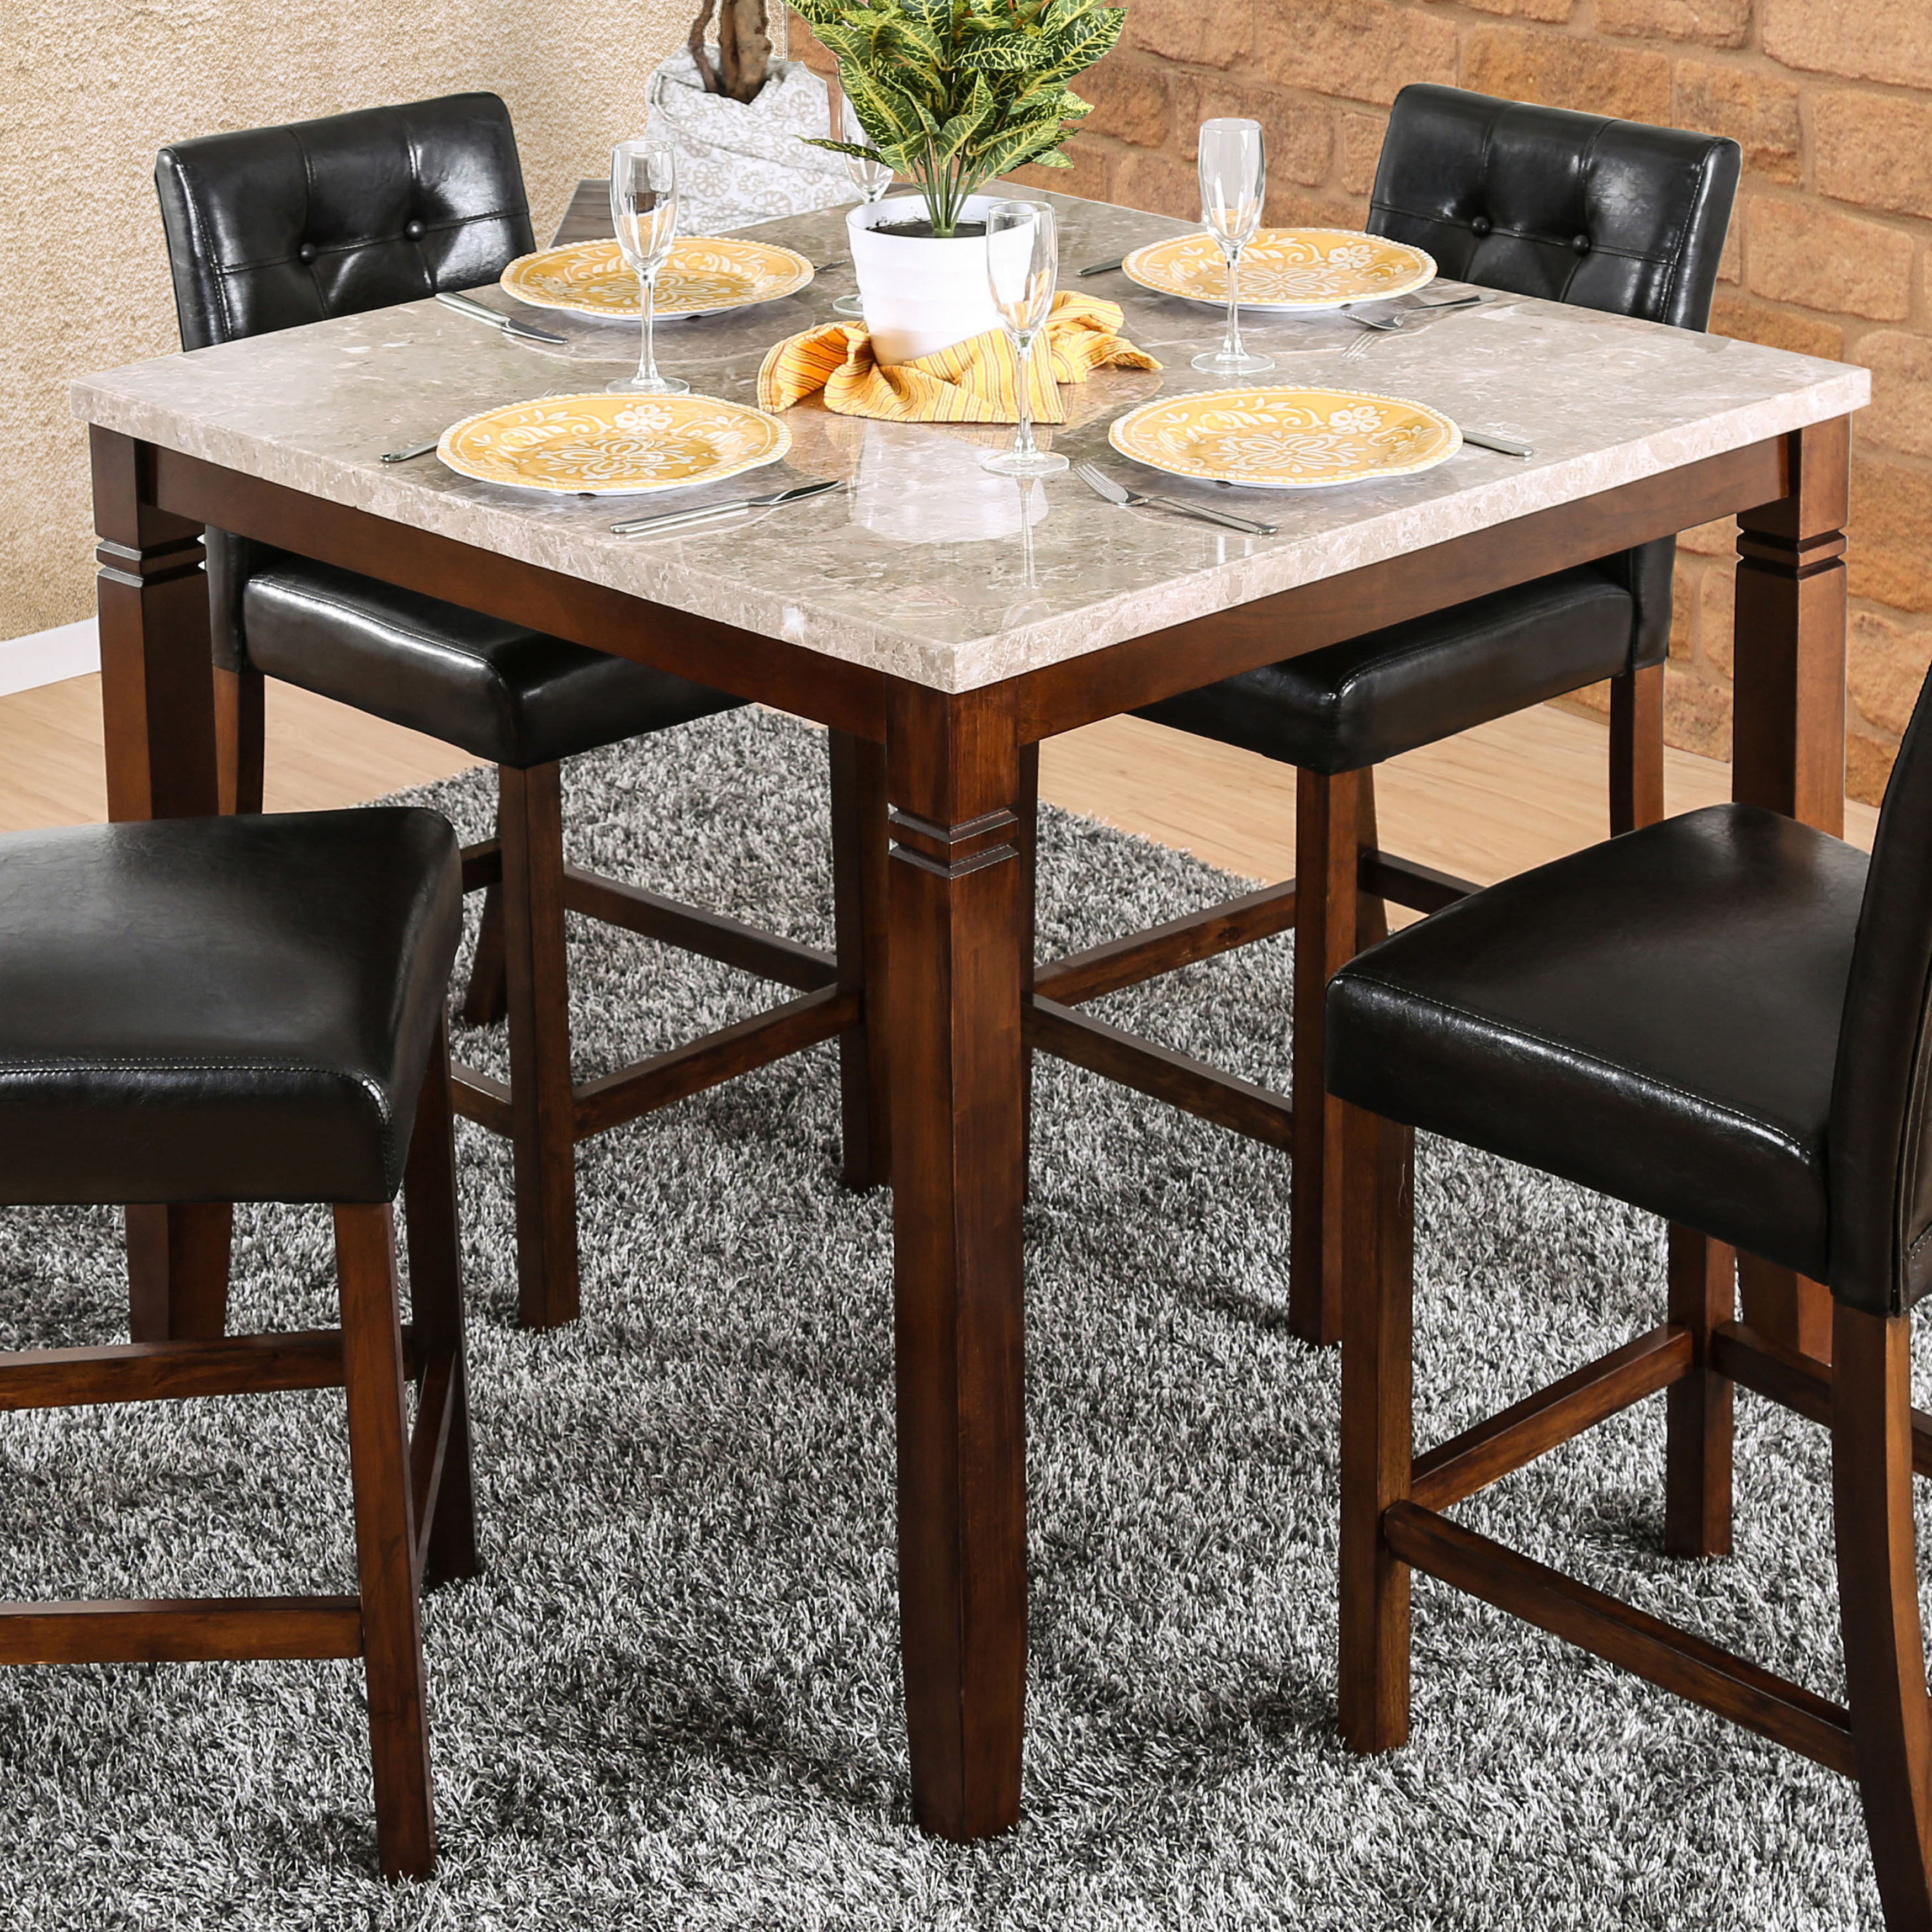 Best ideas about Overstock Dining Table . Save or Pin 43 Types of Tables for Your Home 2018 Buying Guide Now.